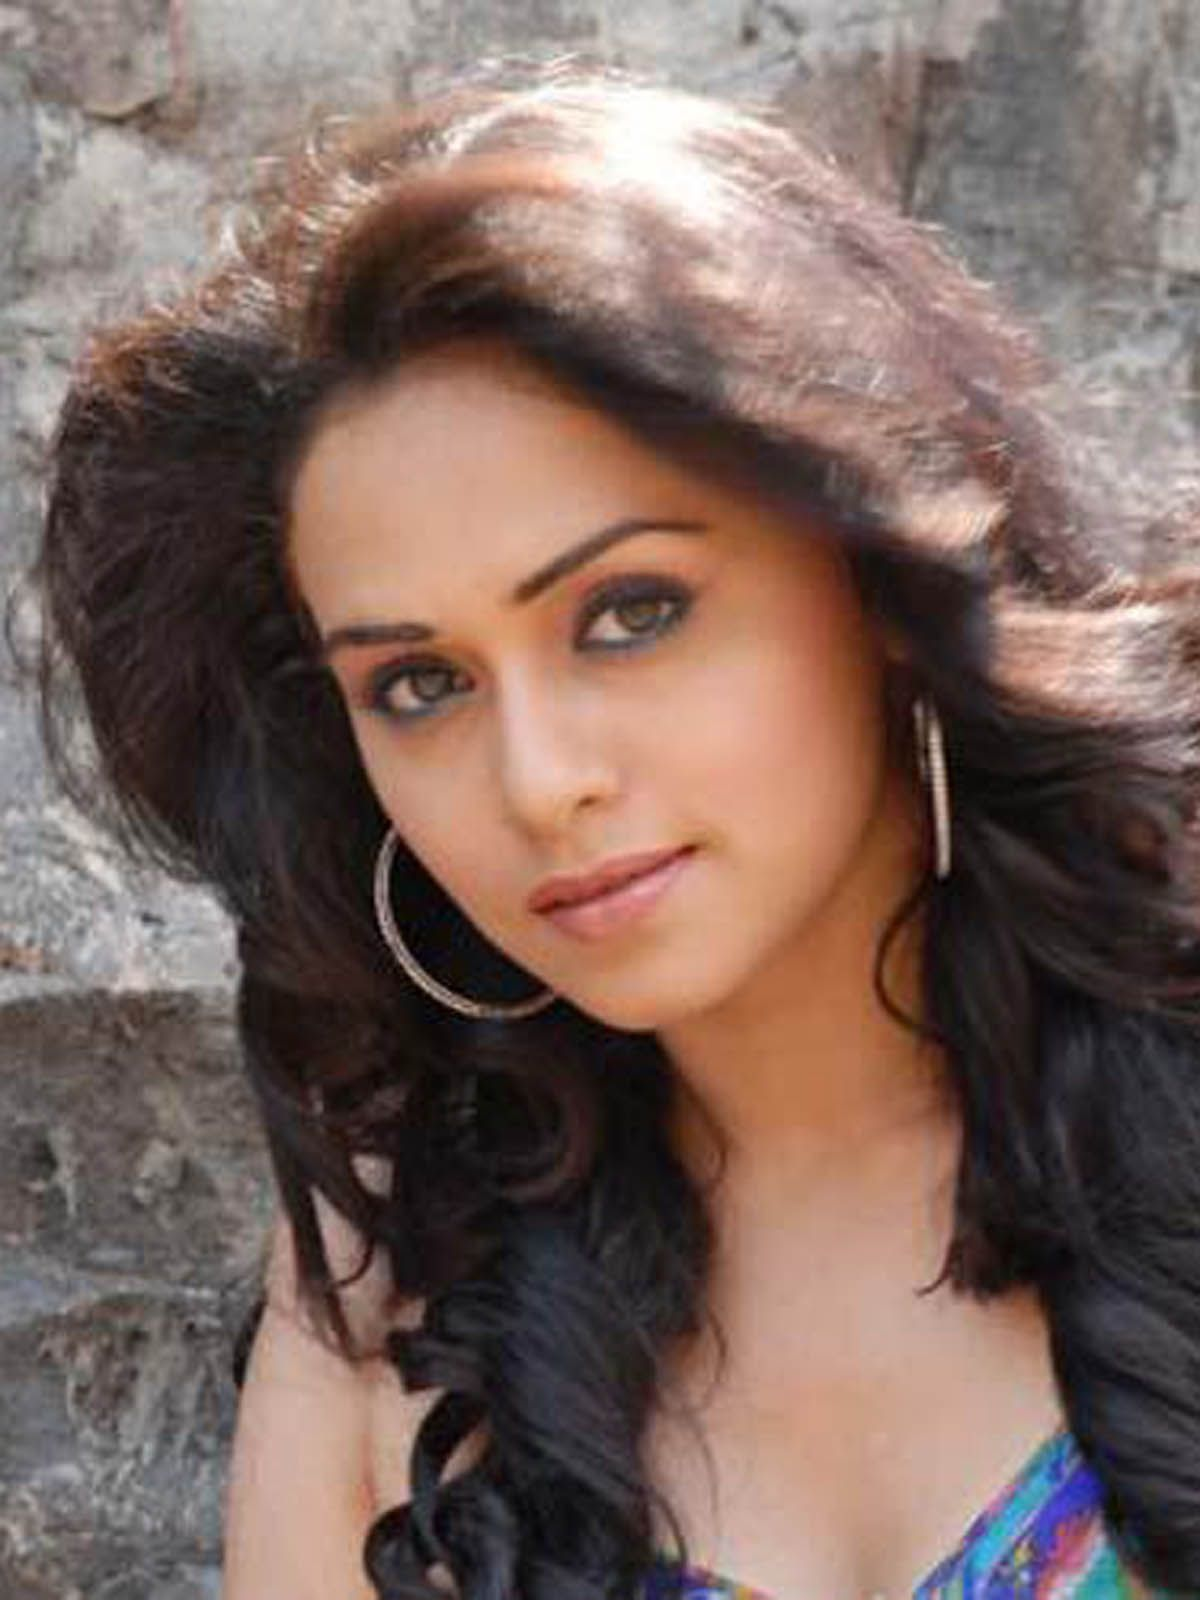 amruta khanvilkar husbandamruta khanvilkar love story, amruta khanvilkar instagram, amruta khanvilkar and himanshu malhotra, amruta khanvilkar height, amruta khanvilkar, amruta khanvilkar movies, amruta khanvilkar married, amruta khanvilkar wedding photos, amruta khanvilkar husband, amruta khanvilkar biography, amruta khanvilkar marriage, amruta khanvilkar affair, amruta khanvilkar hot, amruta khanvilkar affair with music director, amruta khanvilkar facebook, amruta khanvilkar twitter, amruta khanvilkar music director, amruta khanvilkar images, amruta khanvilkar husband name, amruta khanvilkar boyfriend